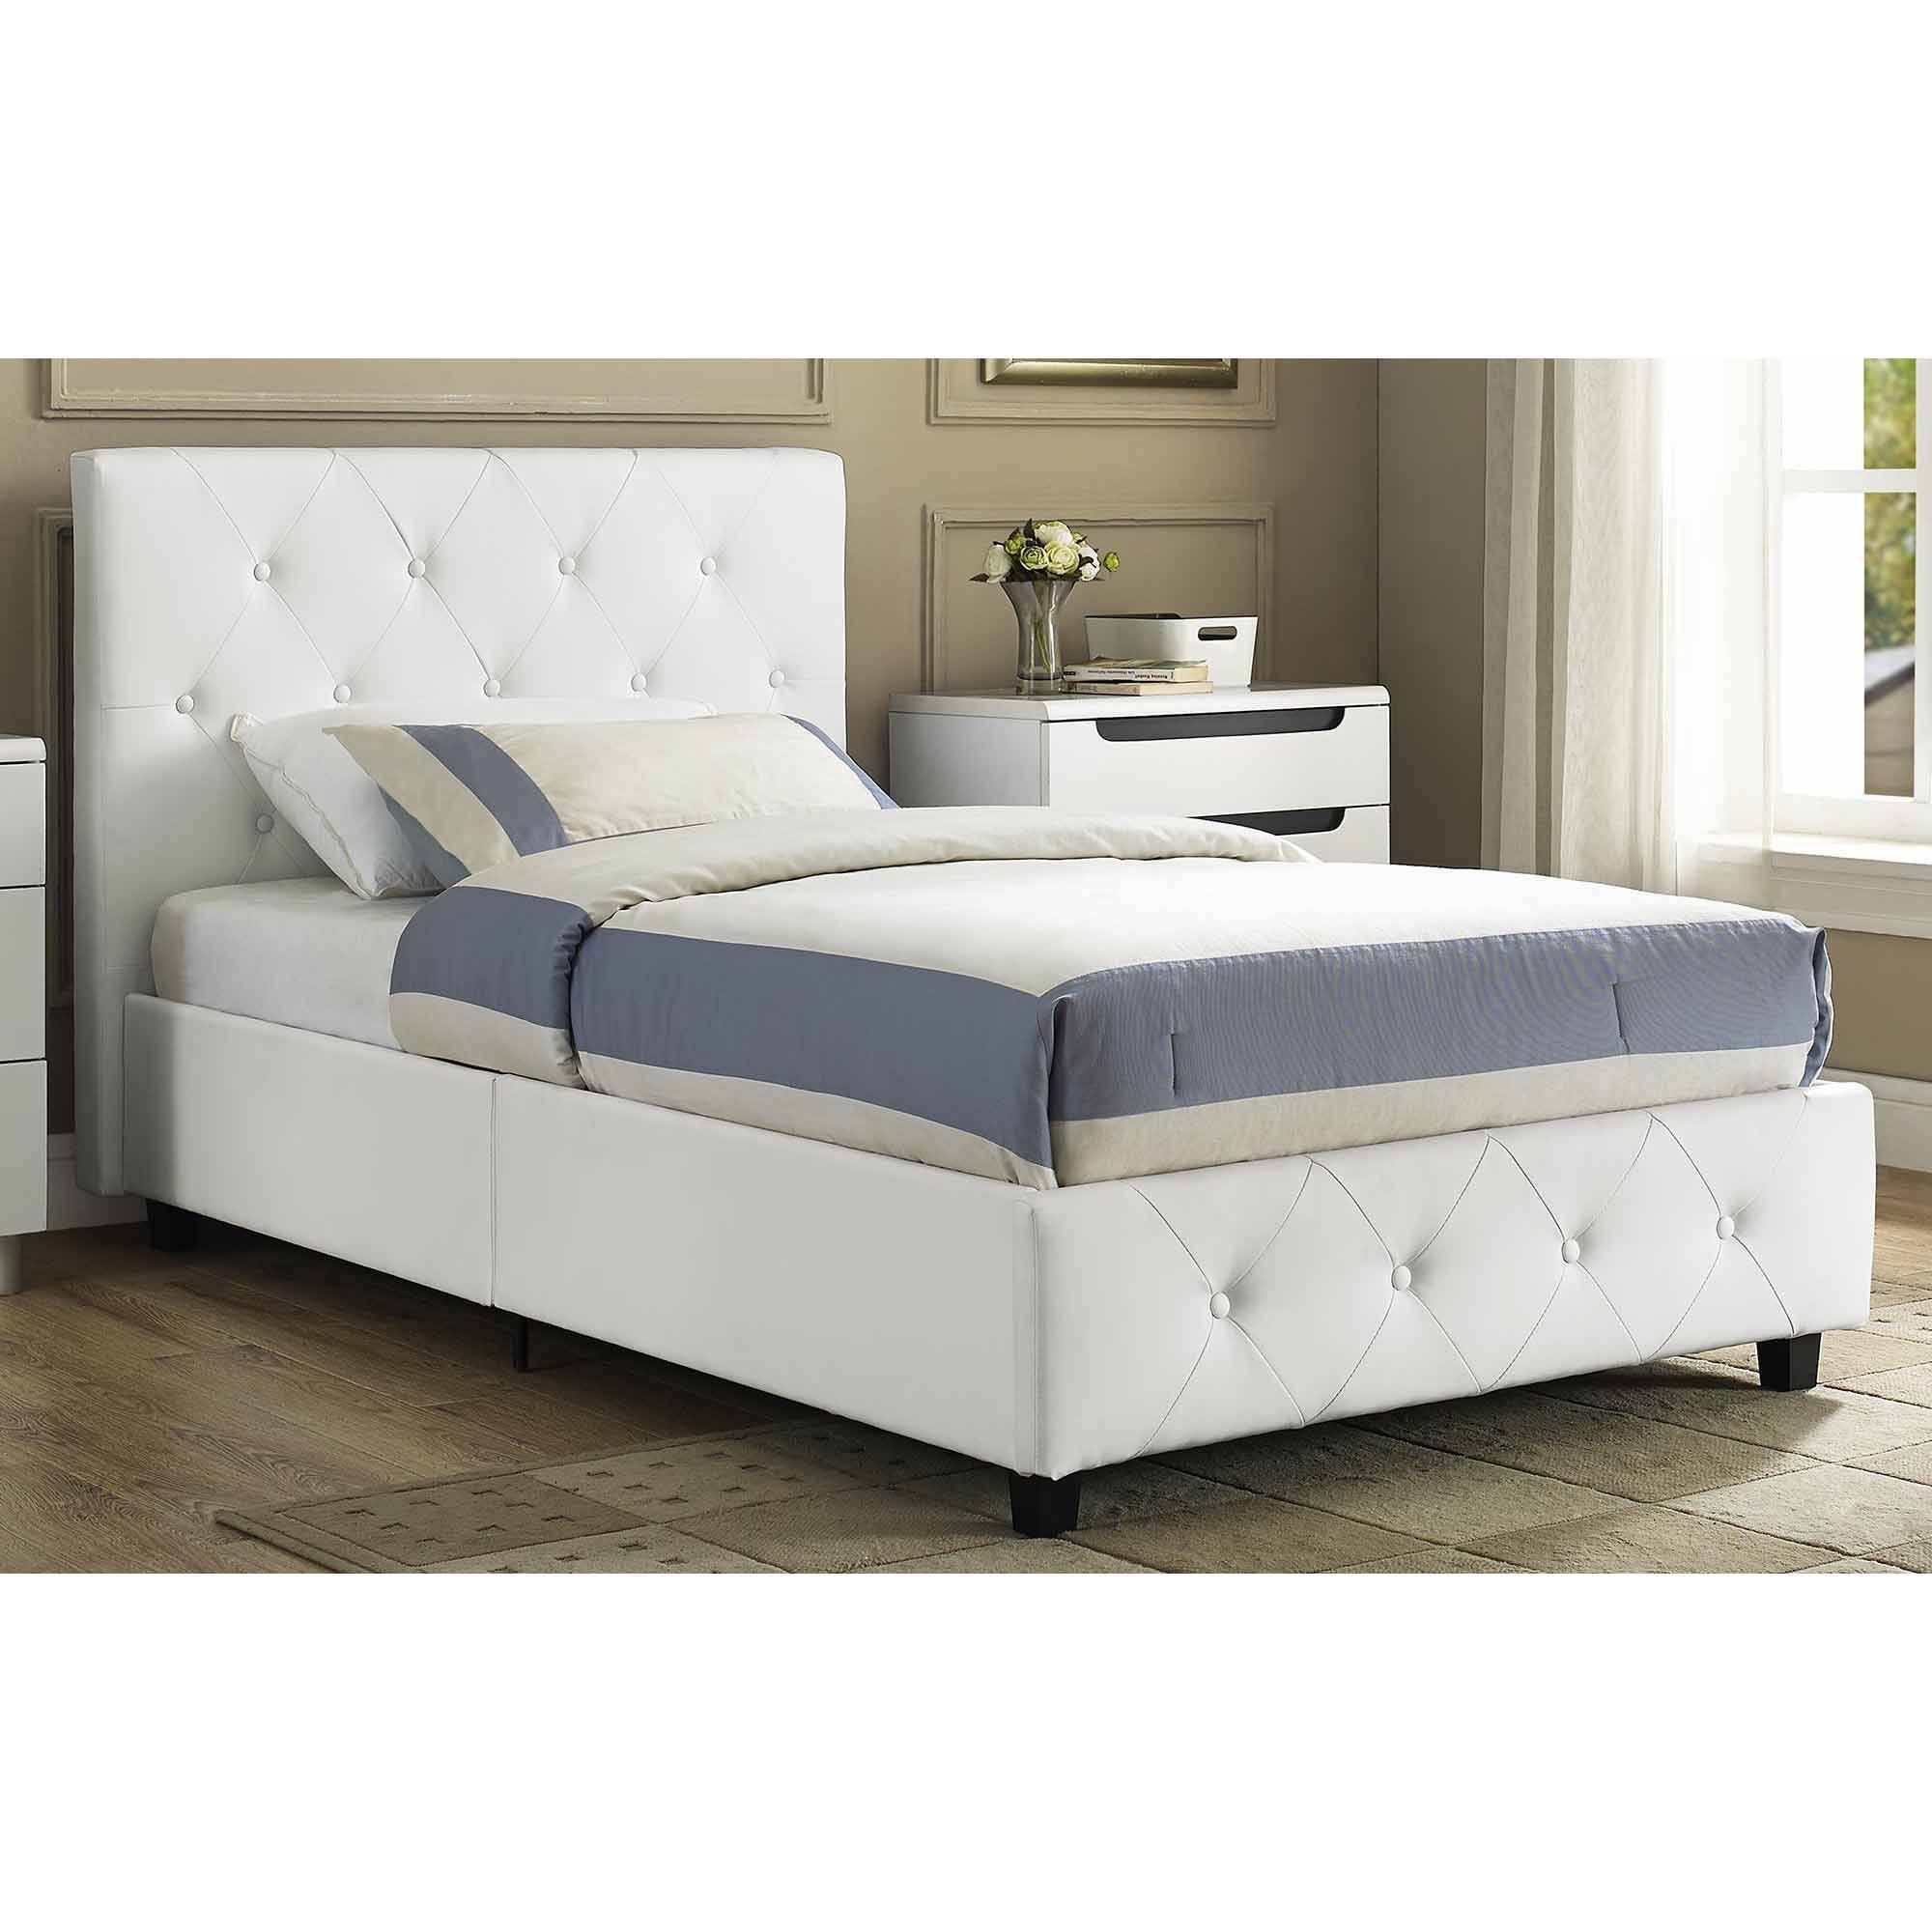 Camaflexi Twin Size Canopy Bed Mission Headboard White Finish